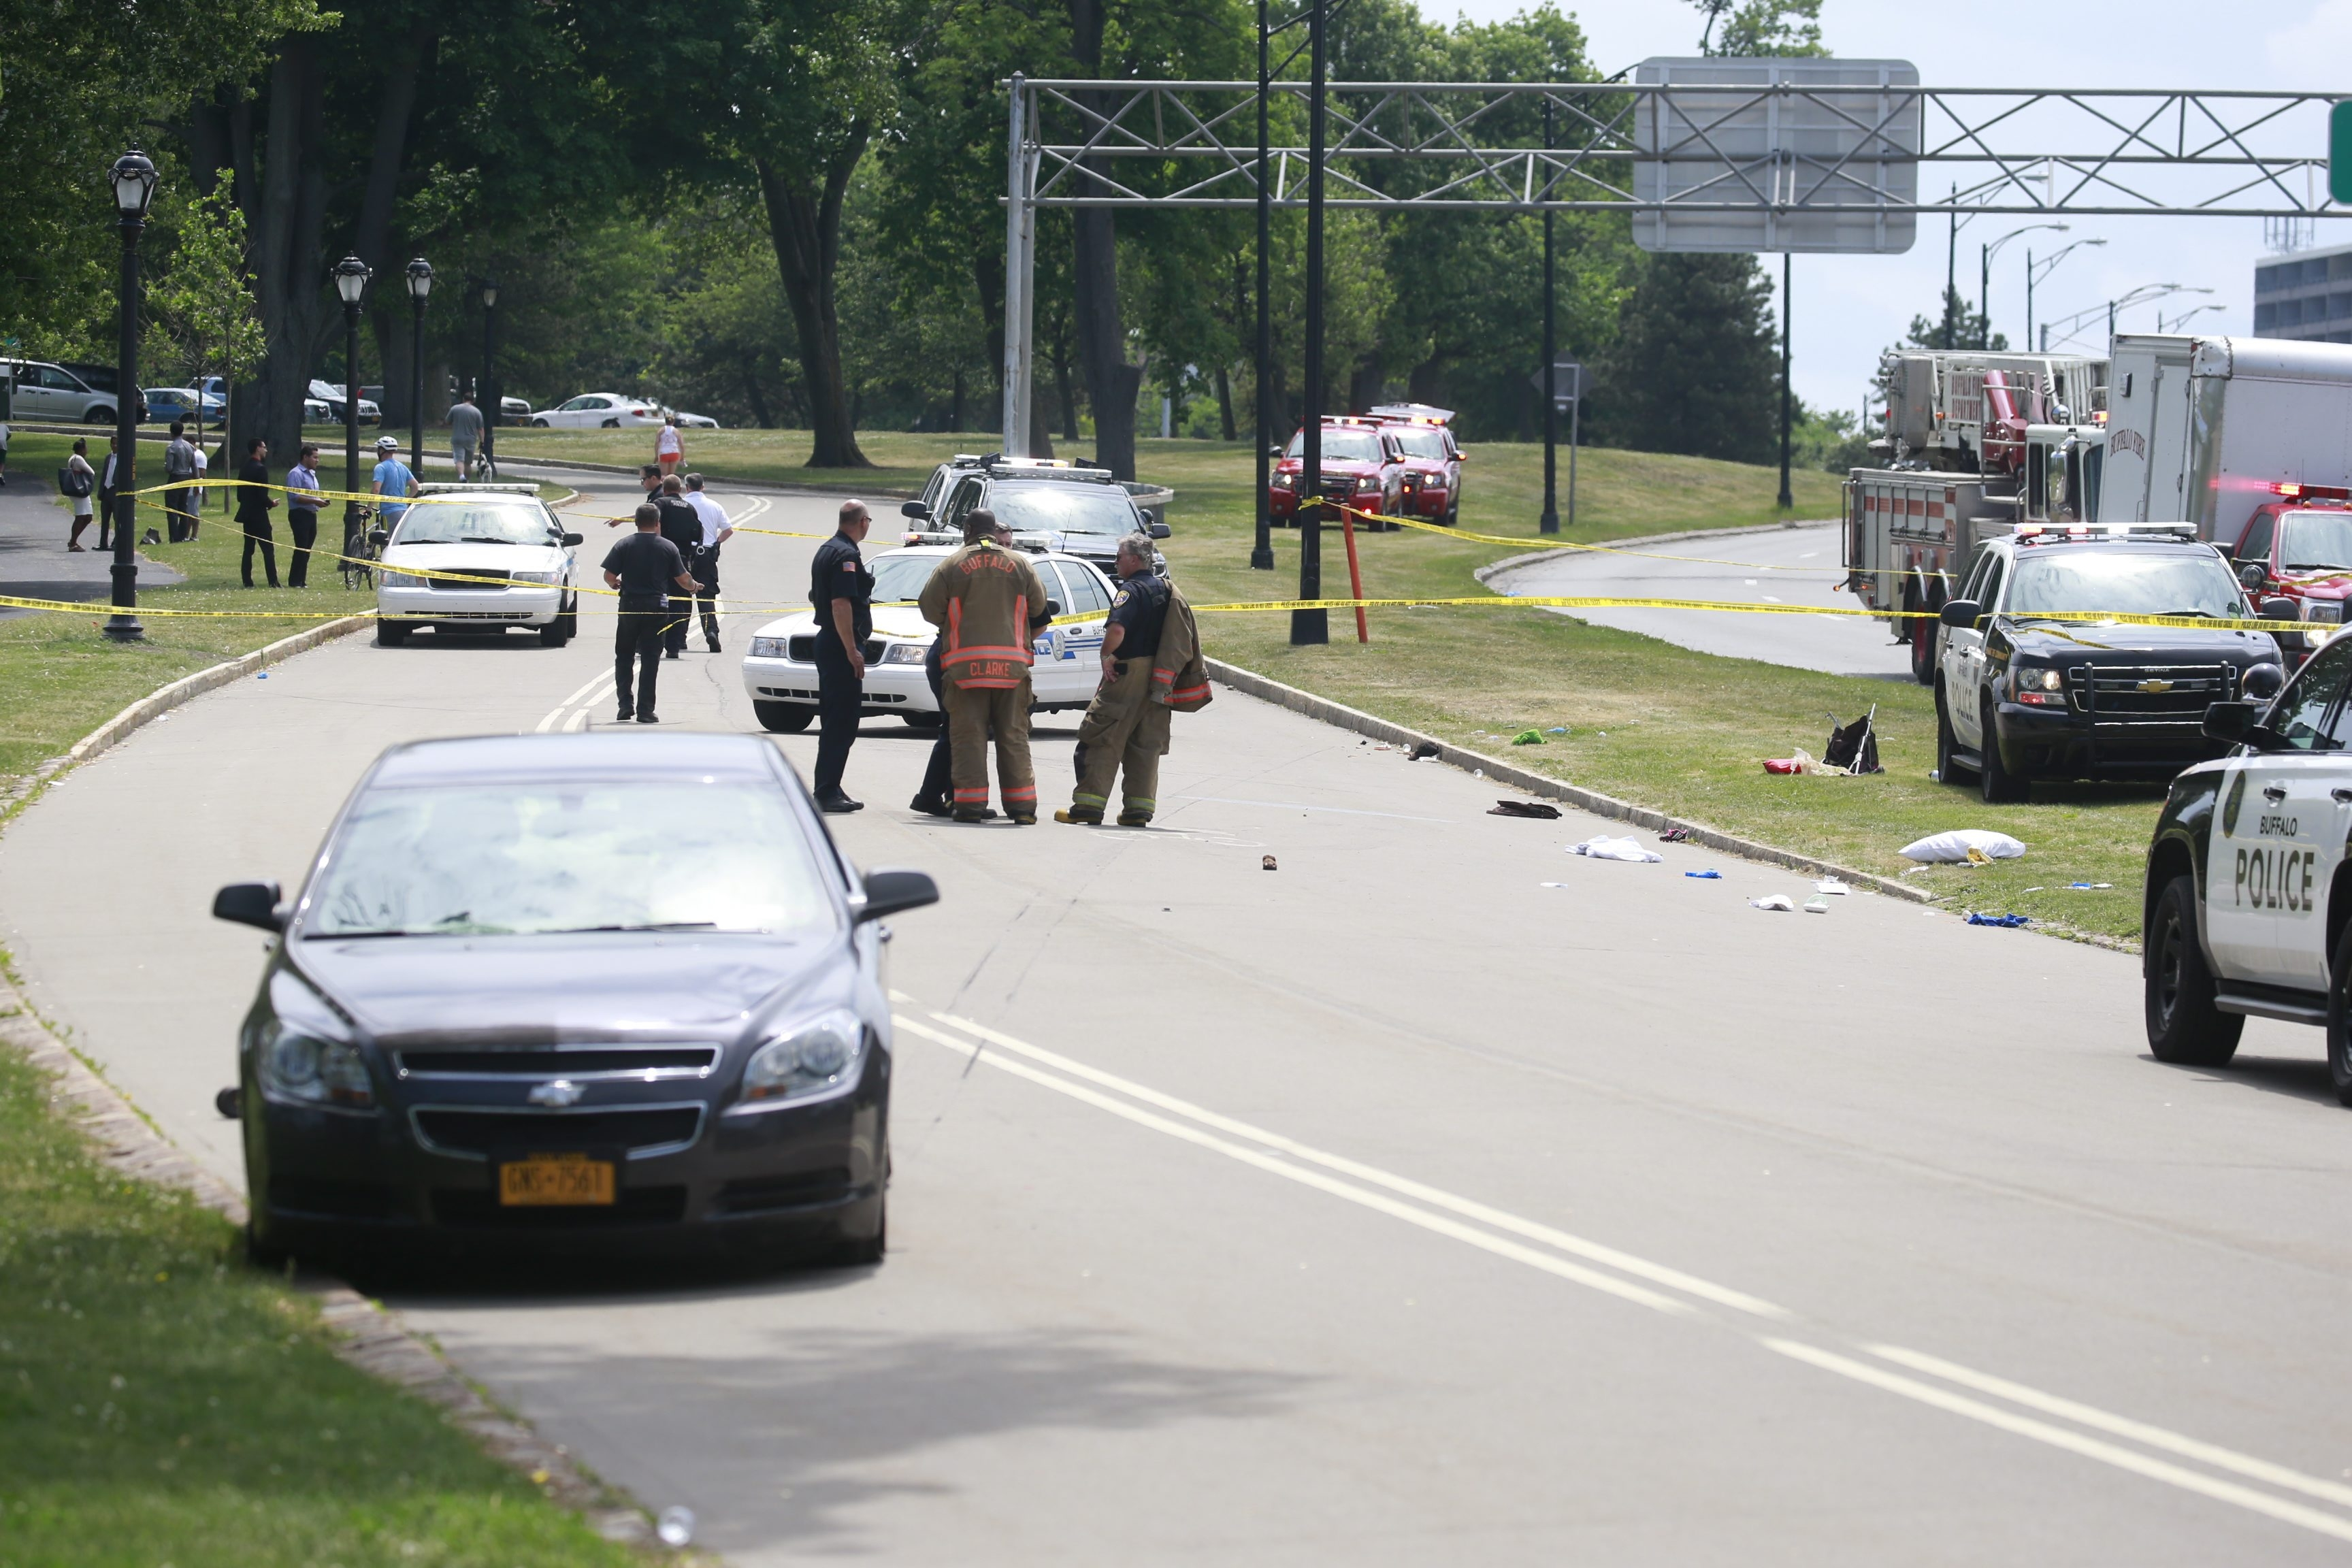 The scene of the fatal crash in Delaware Park that killed one child Saturday.